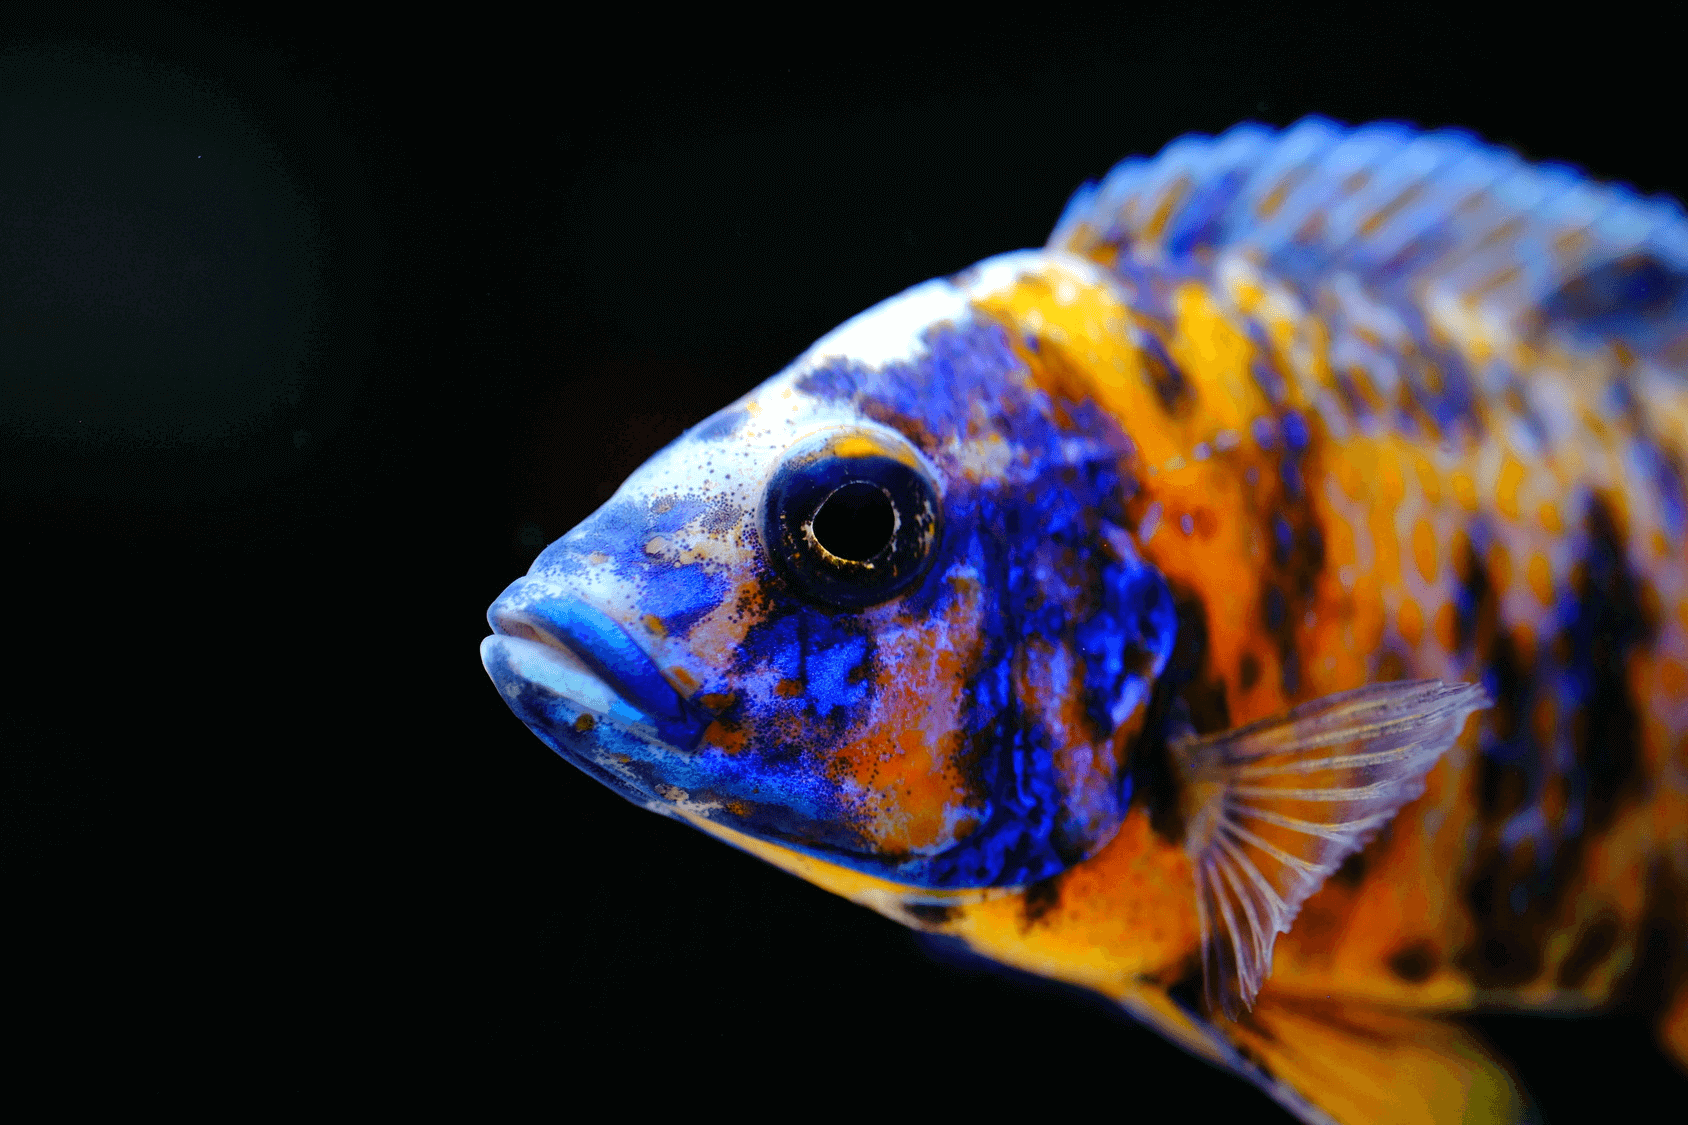 Peacock-cichlid Top 10 Most Beautiful Colorful Fish Types